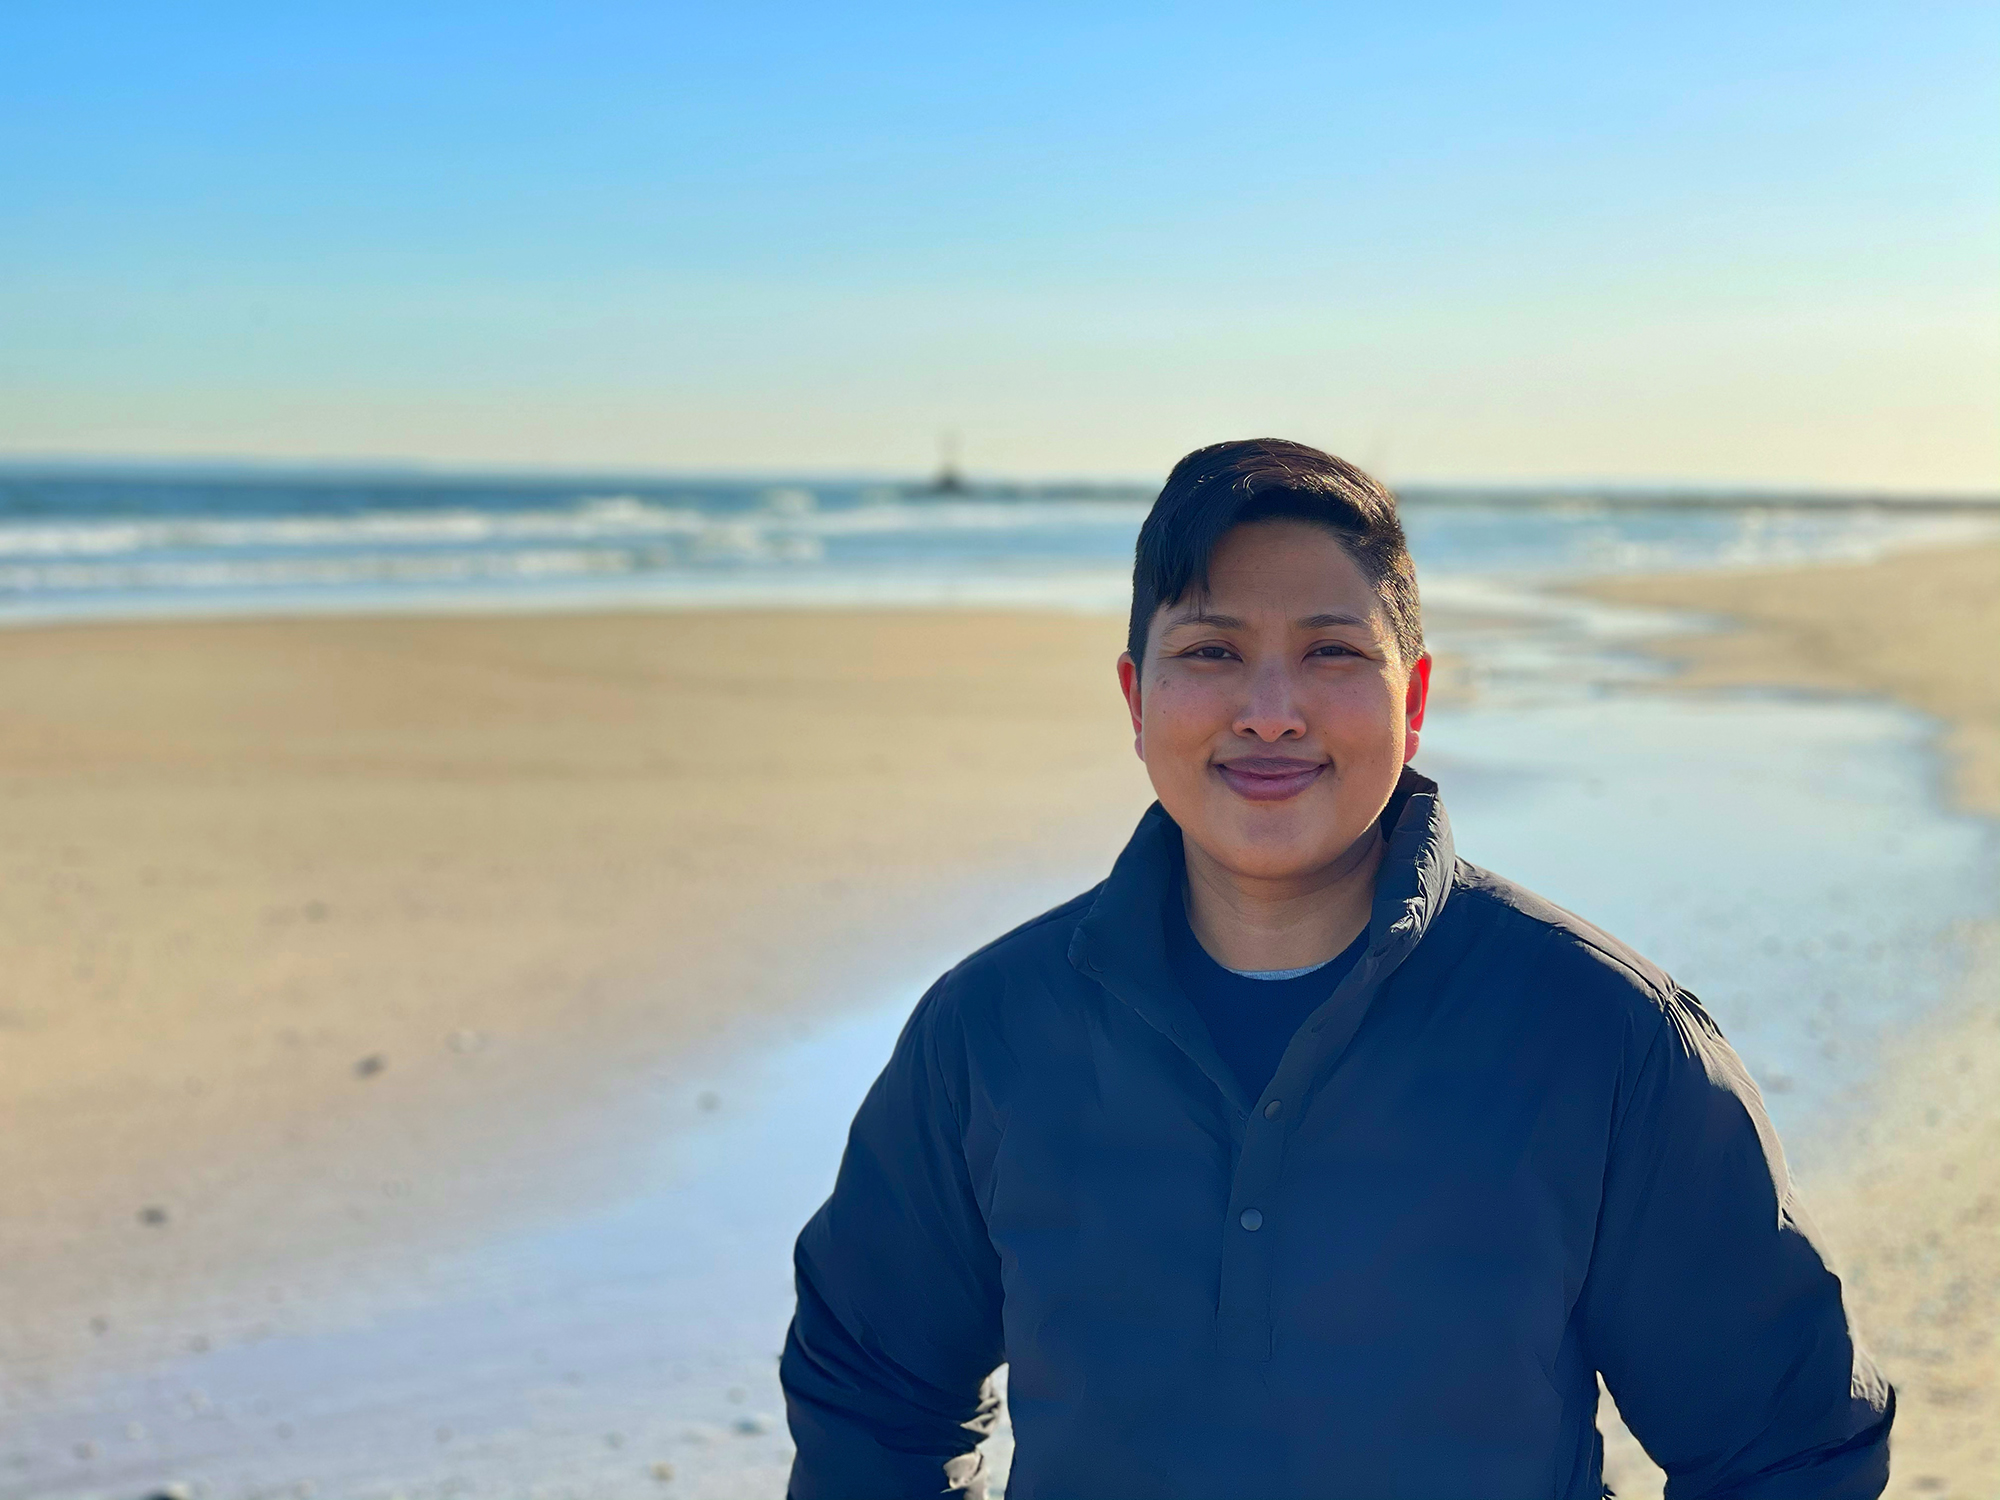 Bex Ahuja, a person of Asian descent, smiling on a beach.